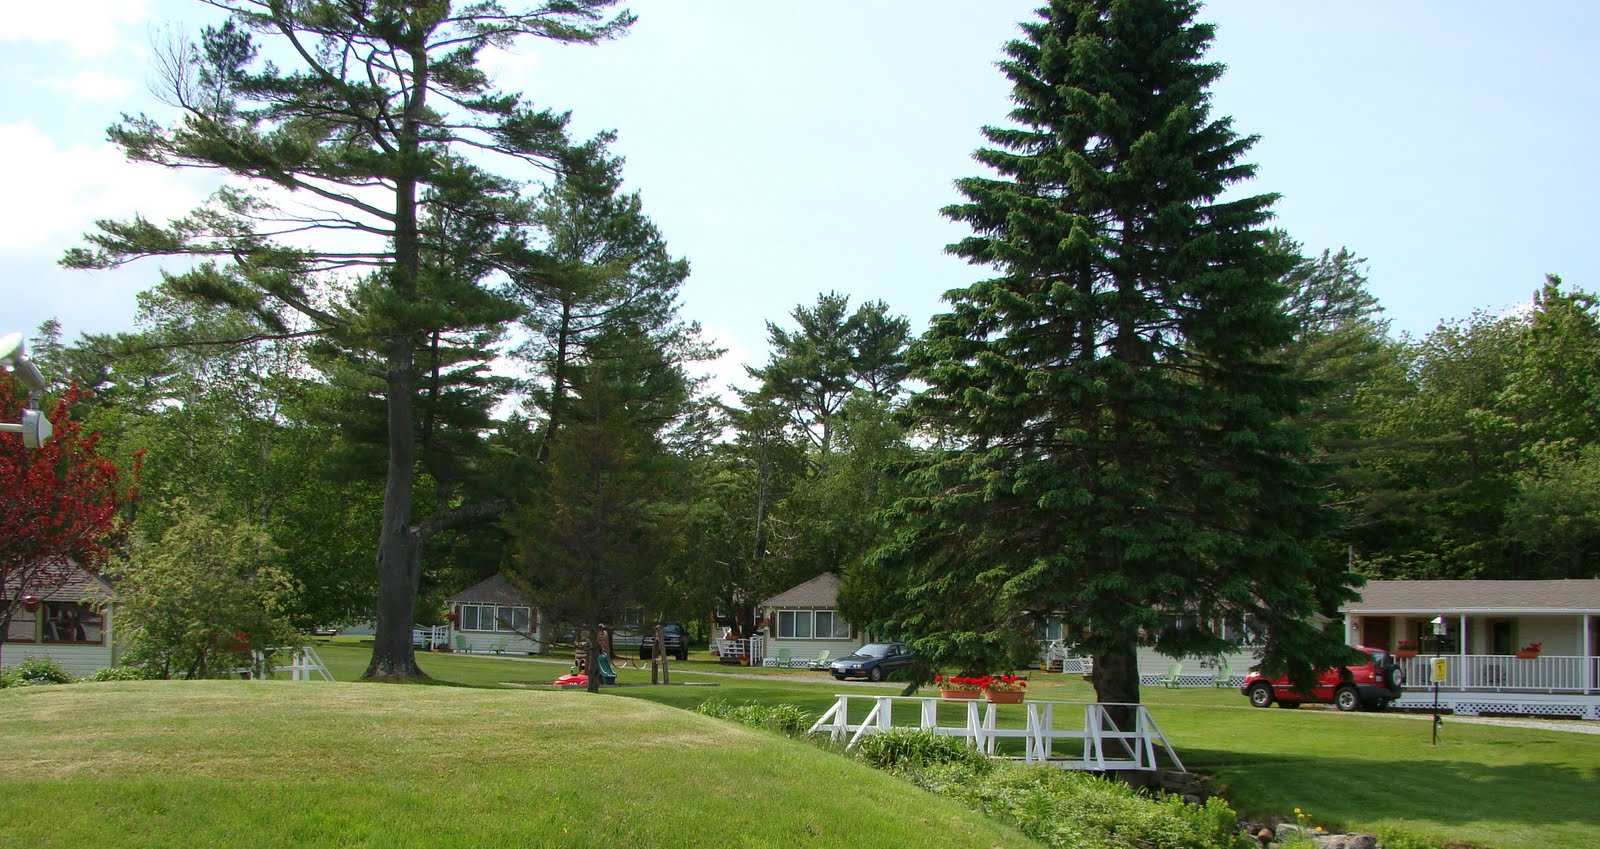 maine lobsters and lodging weddings at bay leaf cottages rh mainelobstersandlodging blogspot com  bay leaf cottages & bistro maine